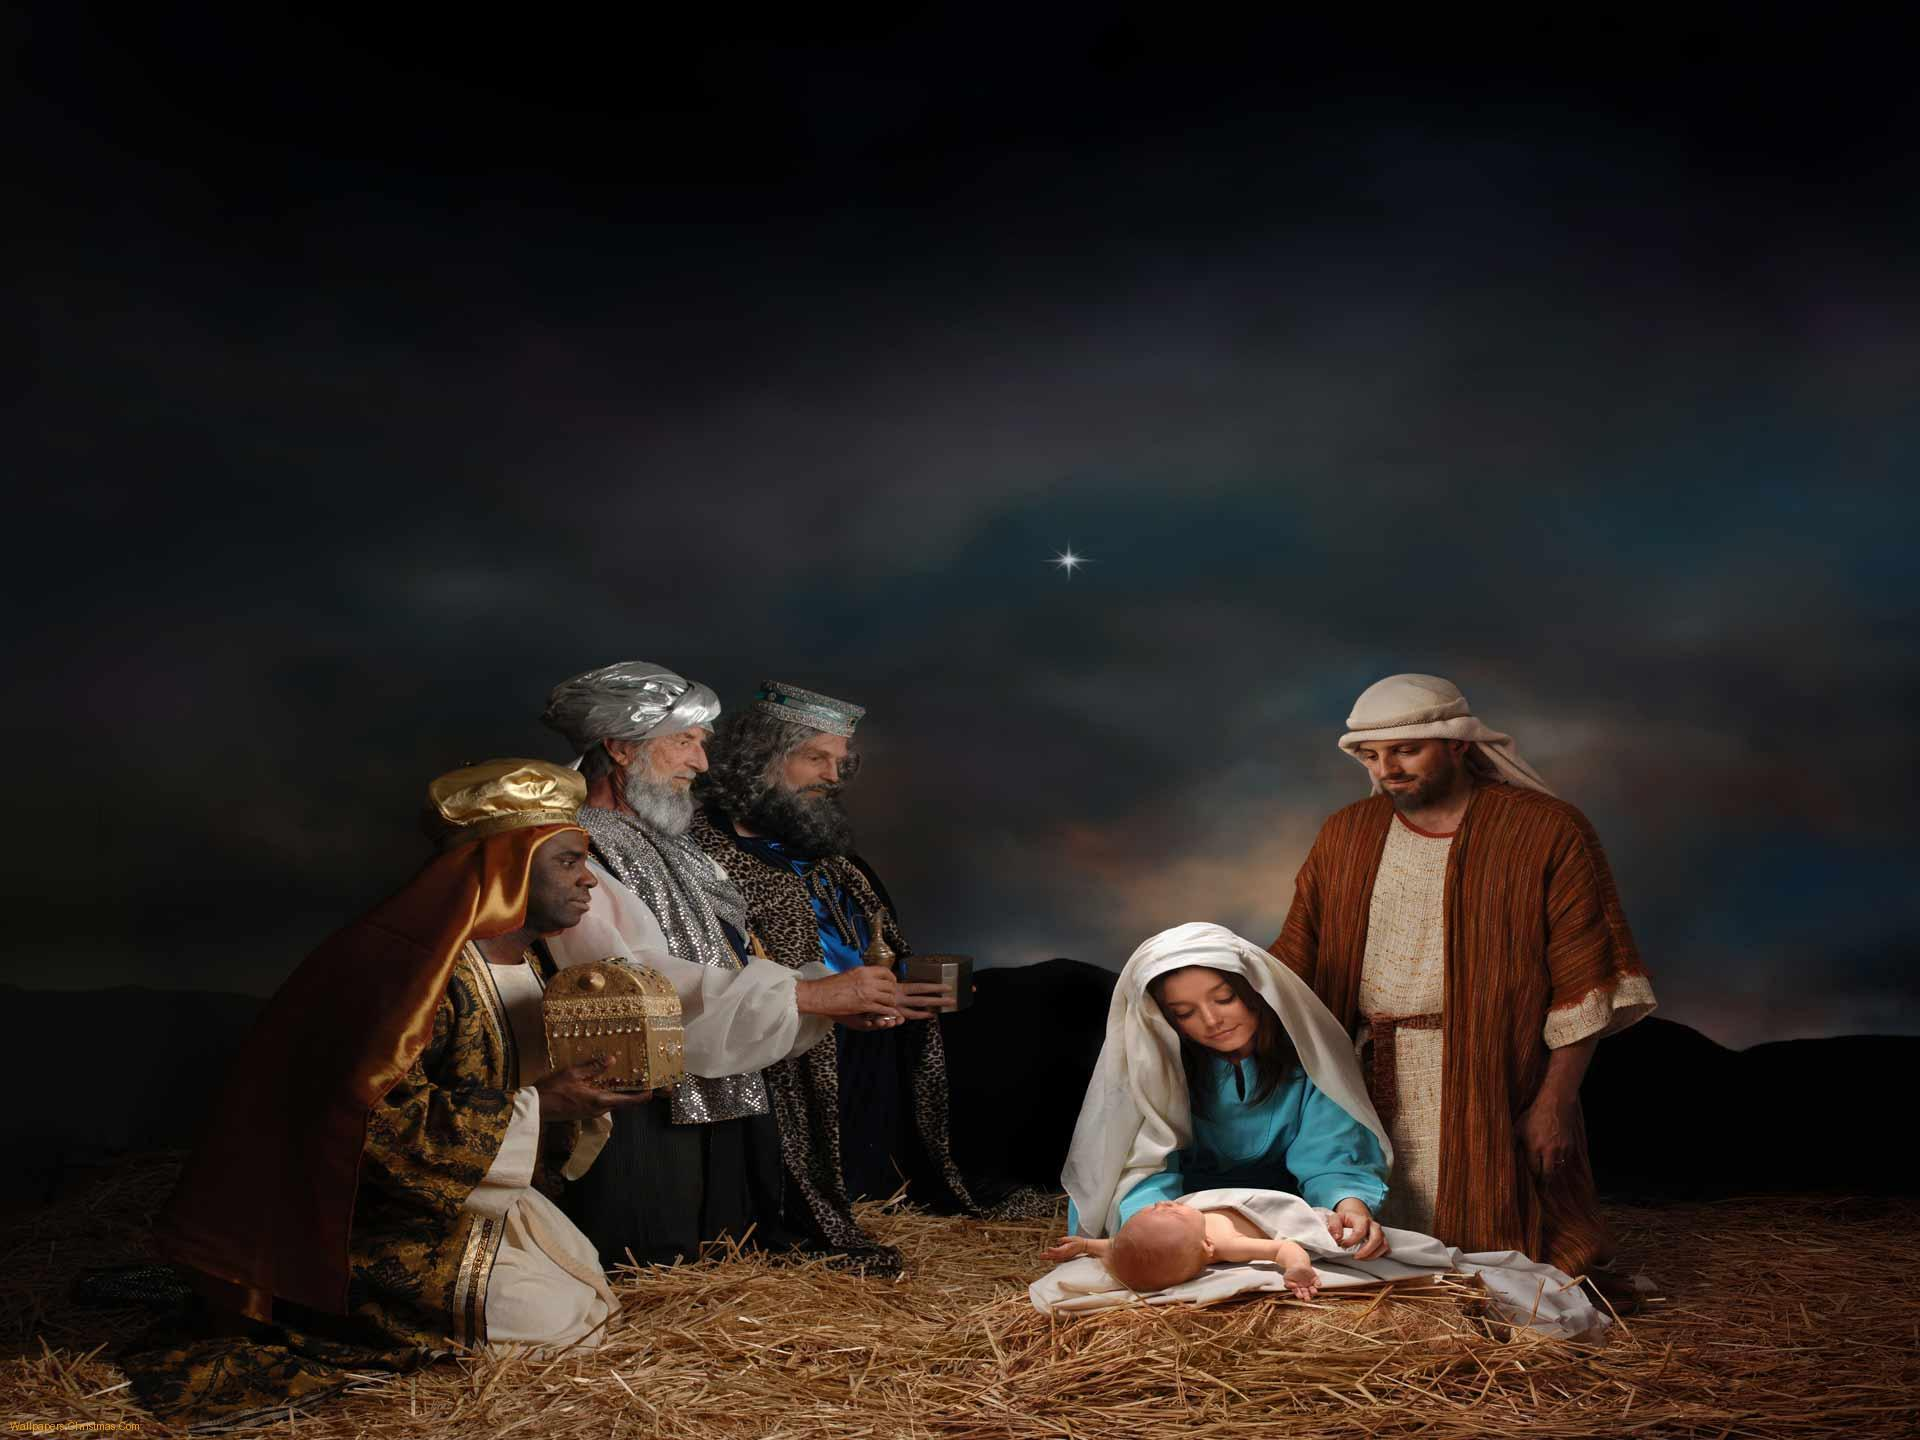 Nativity Scene Desktop Wallpapers 1920x1440